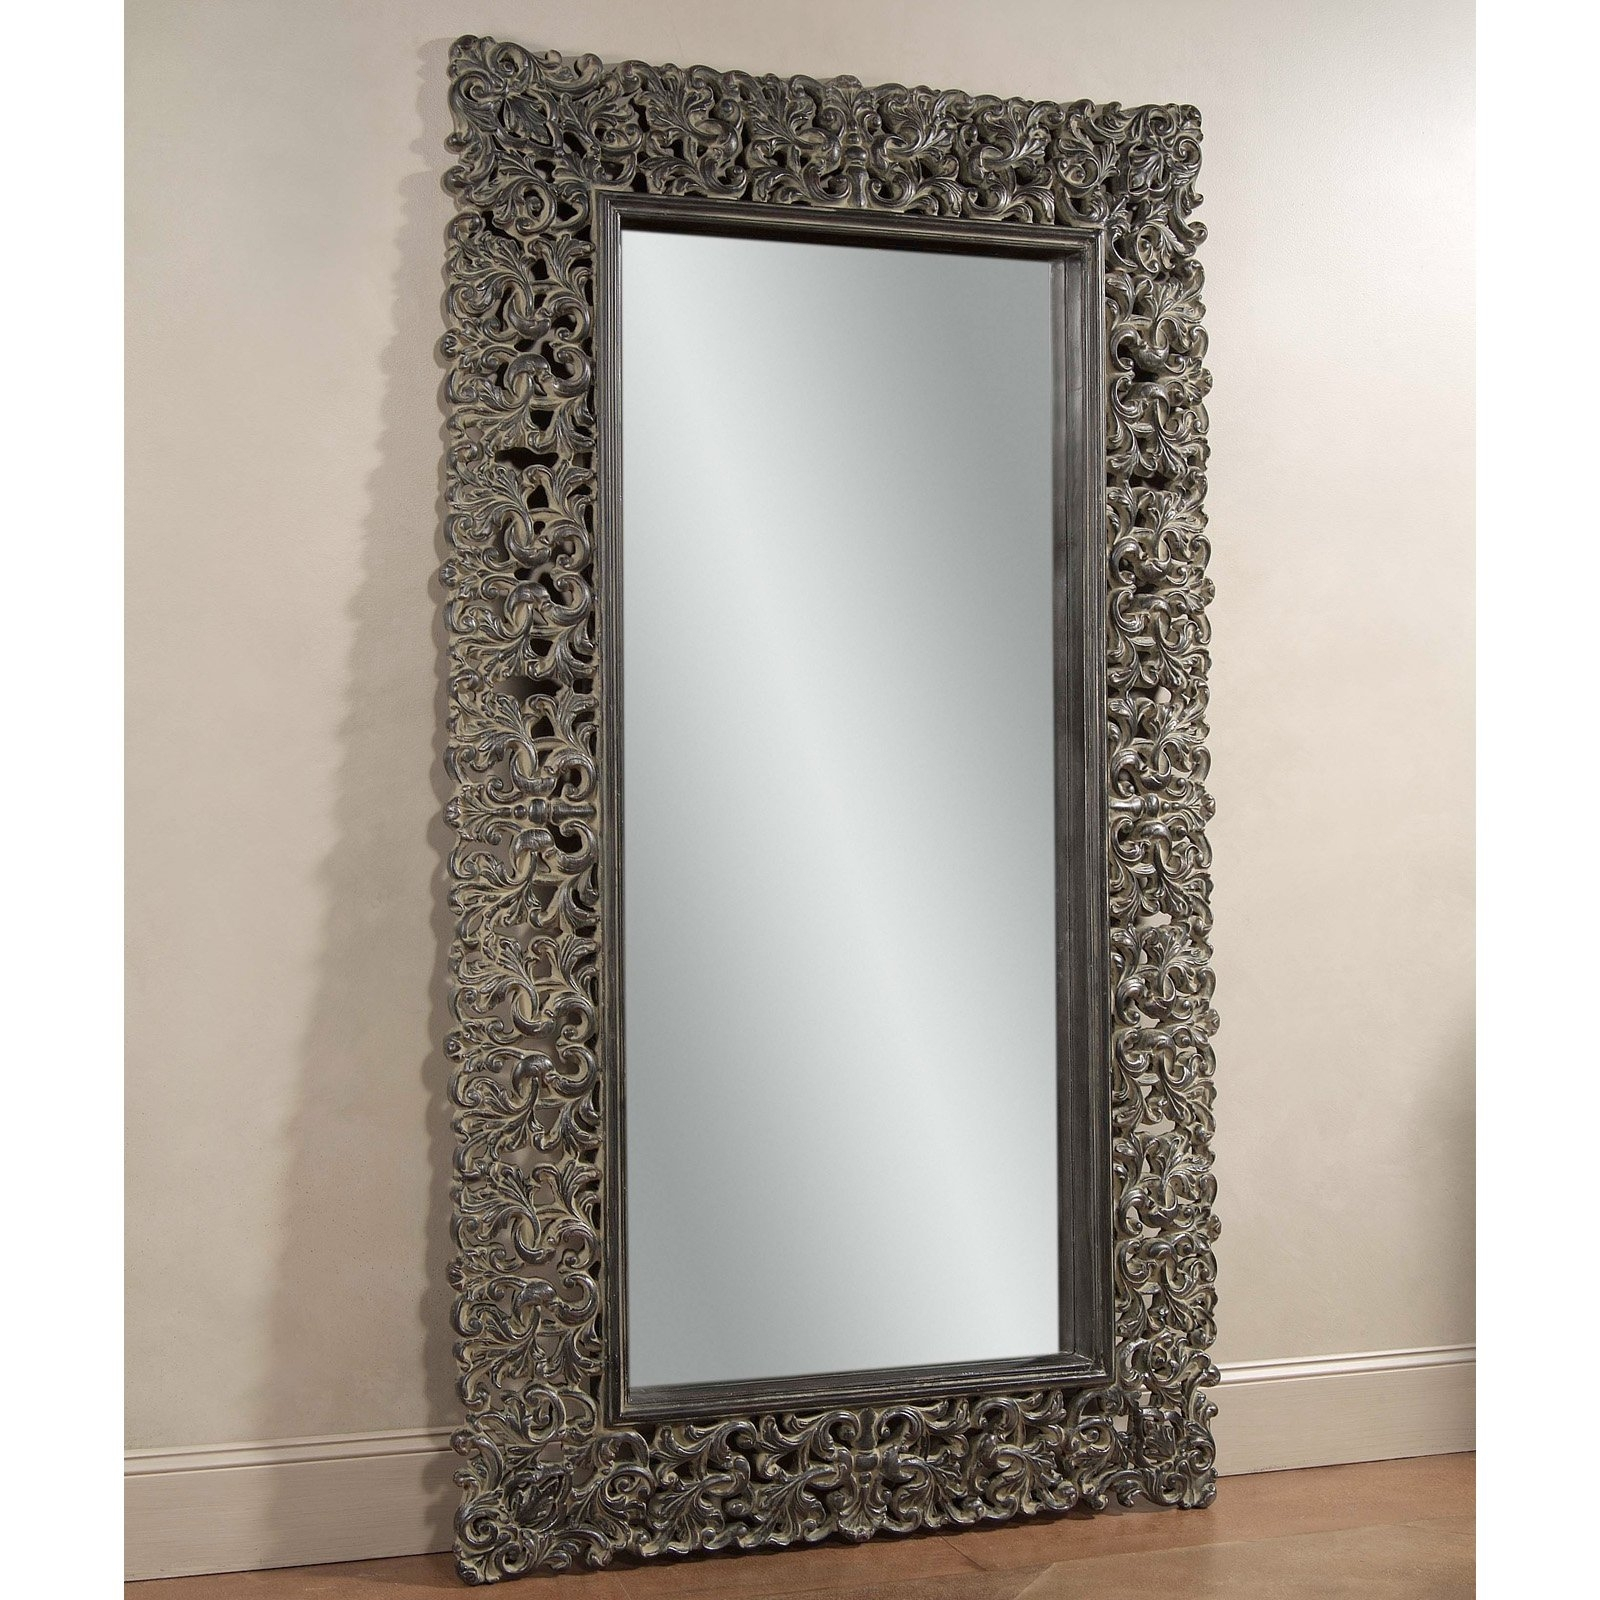 Stand Alone Mirror Regarding Large Stand Alone Mirror (Image 14 of 15)